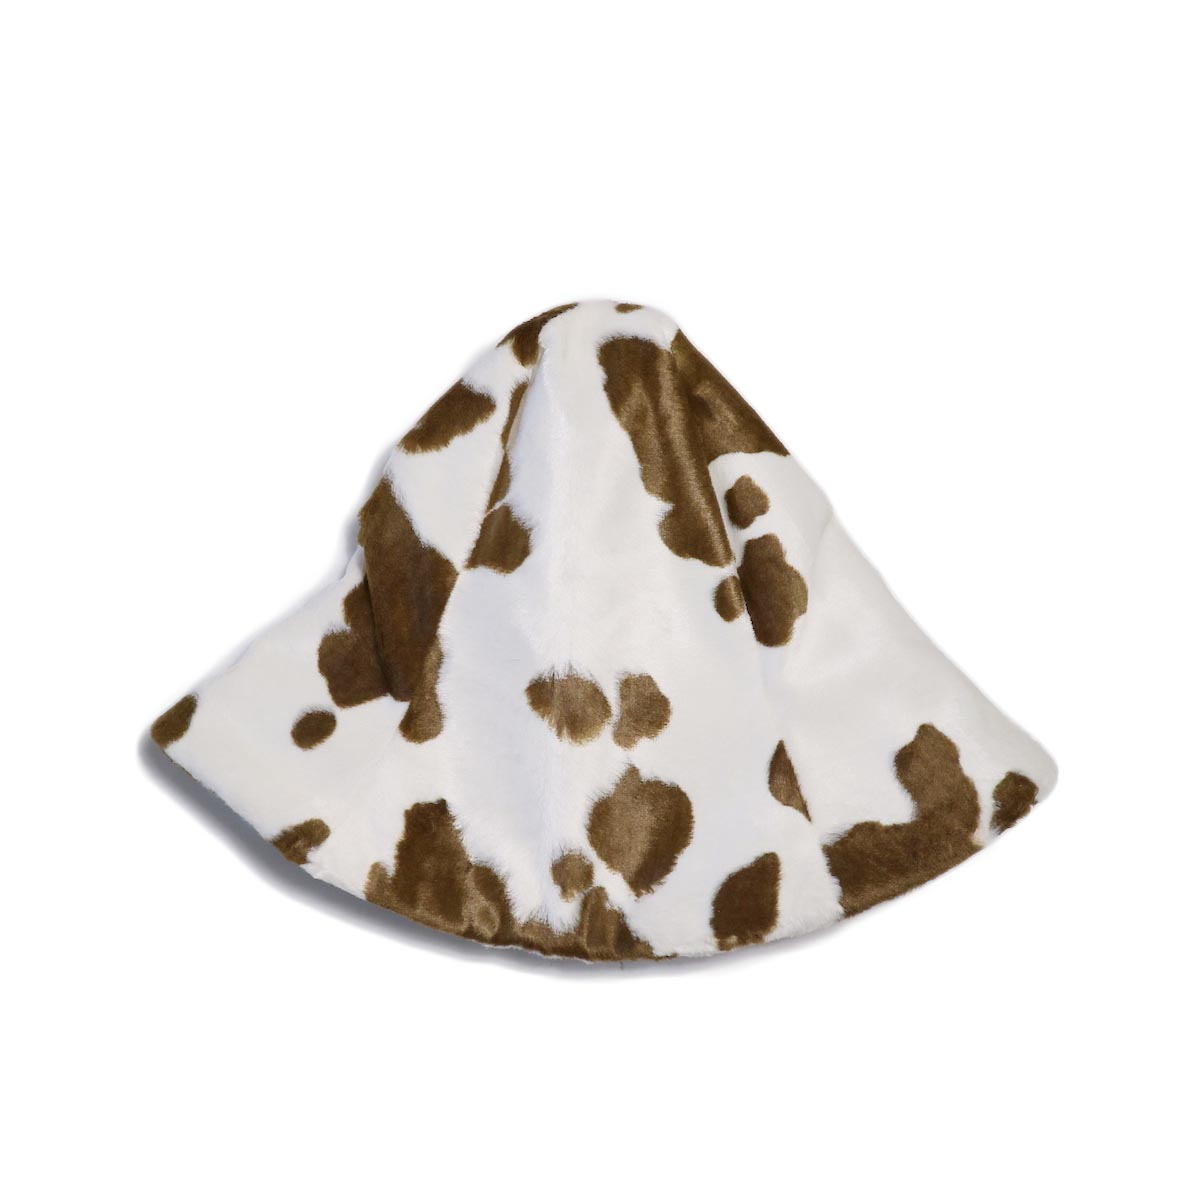 FUMIKA UCHIDA / COW SPOT PRINT TULIP HAT -WHITEBROWN